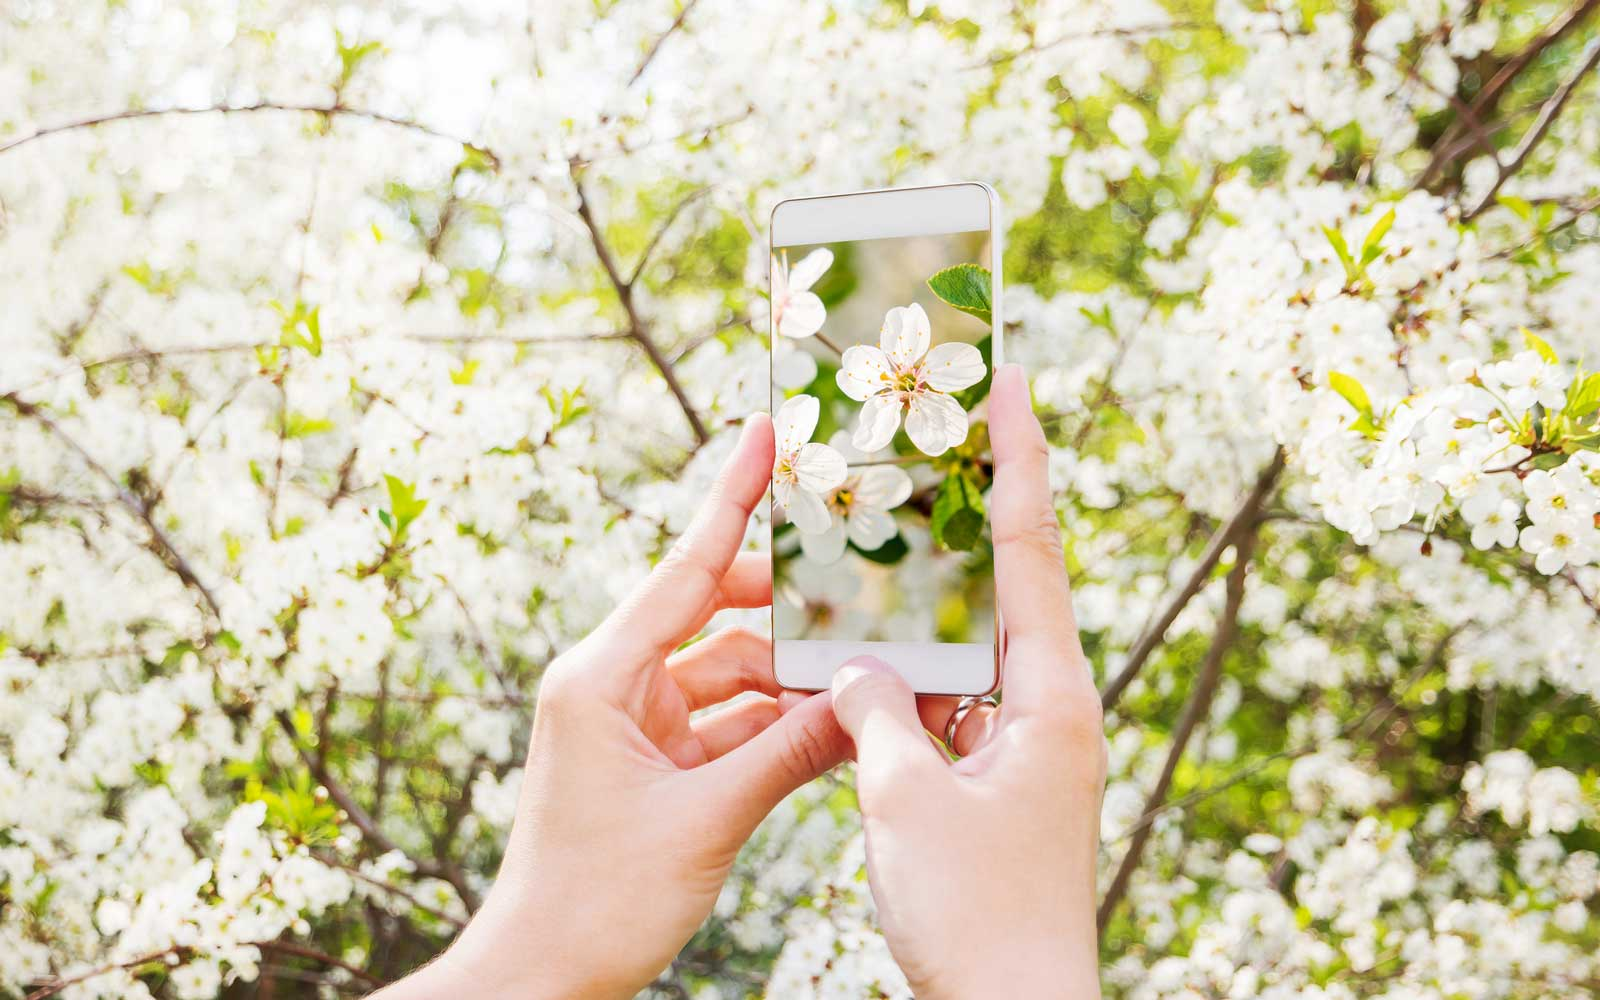 Woman takes photos of cherry blossom on a smartphone.